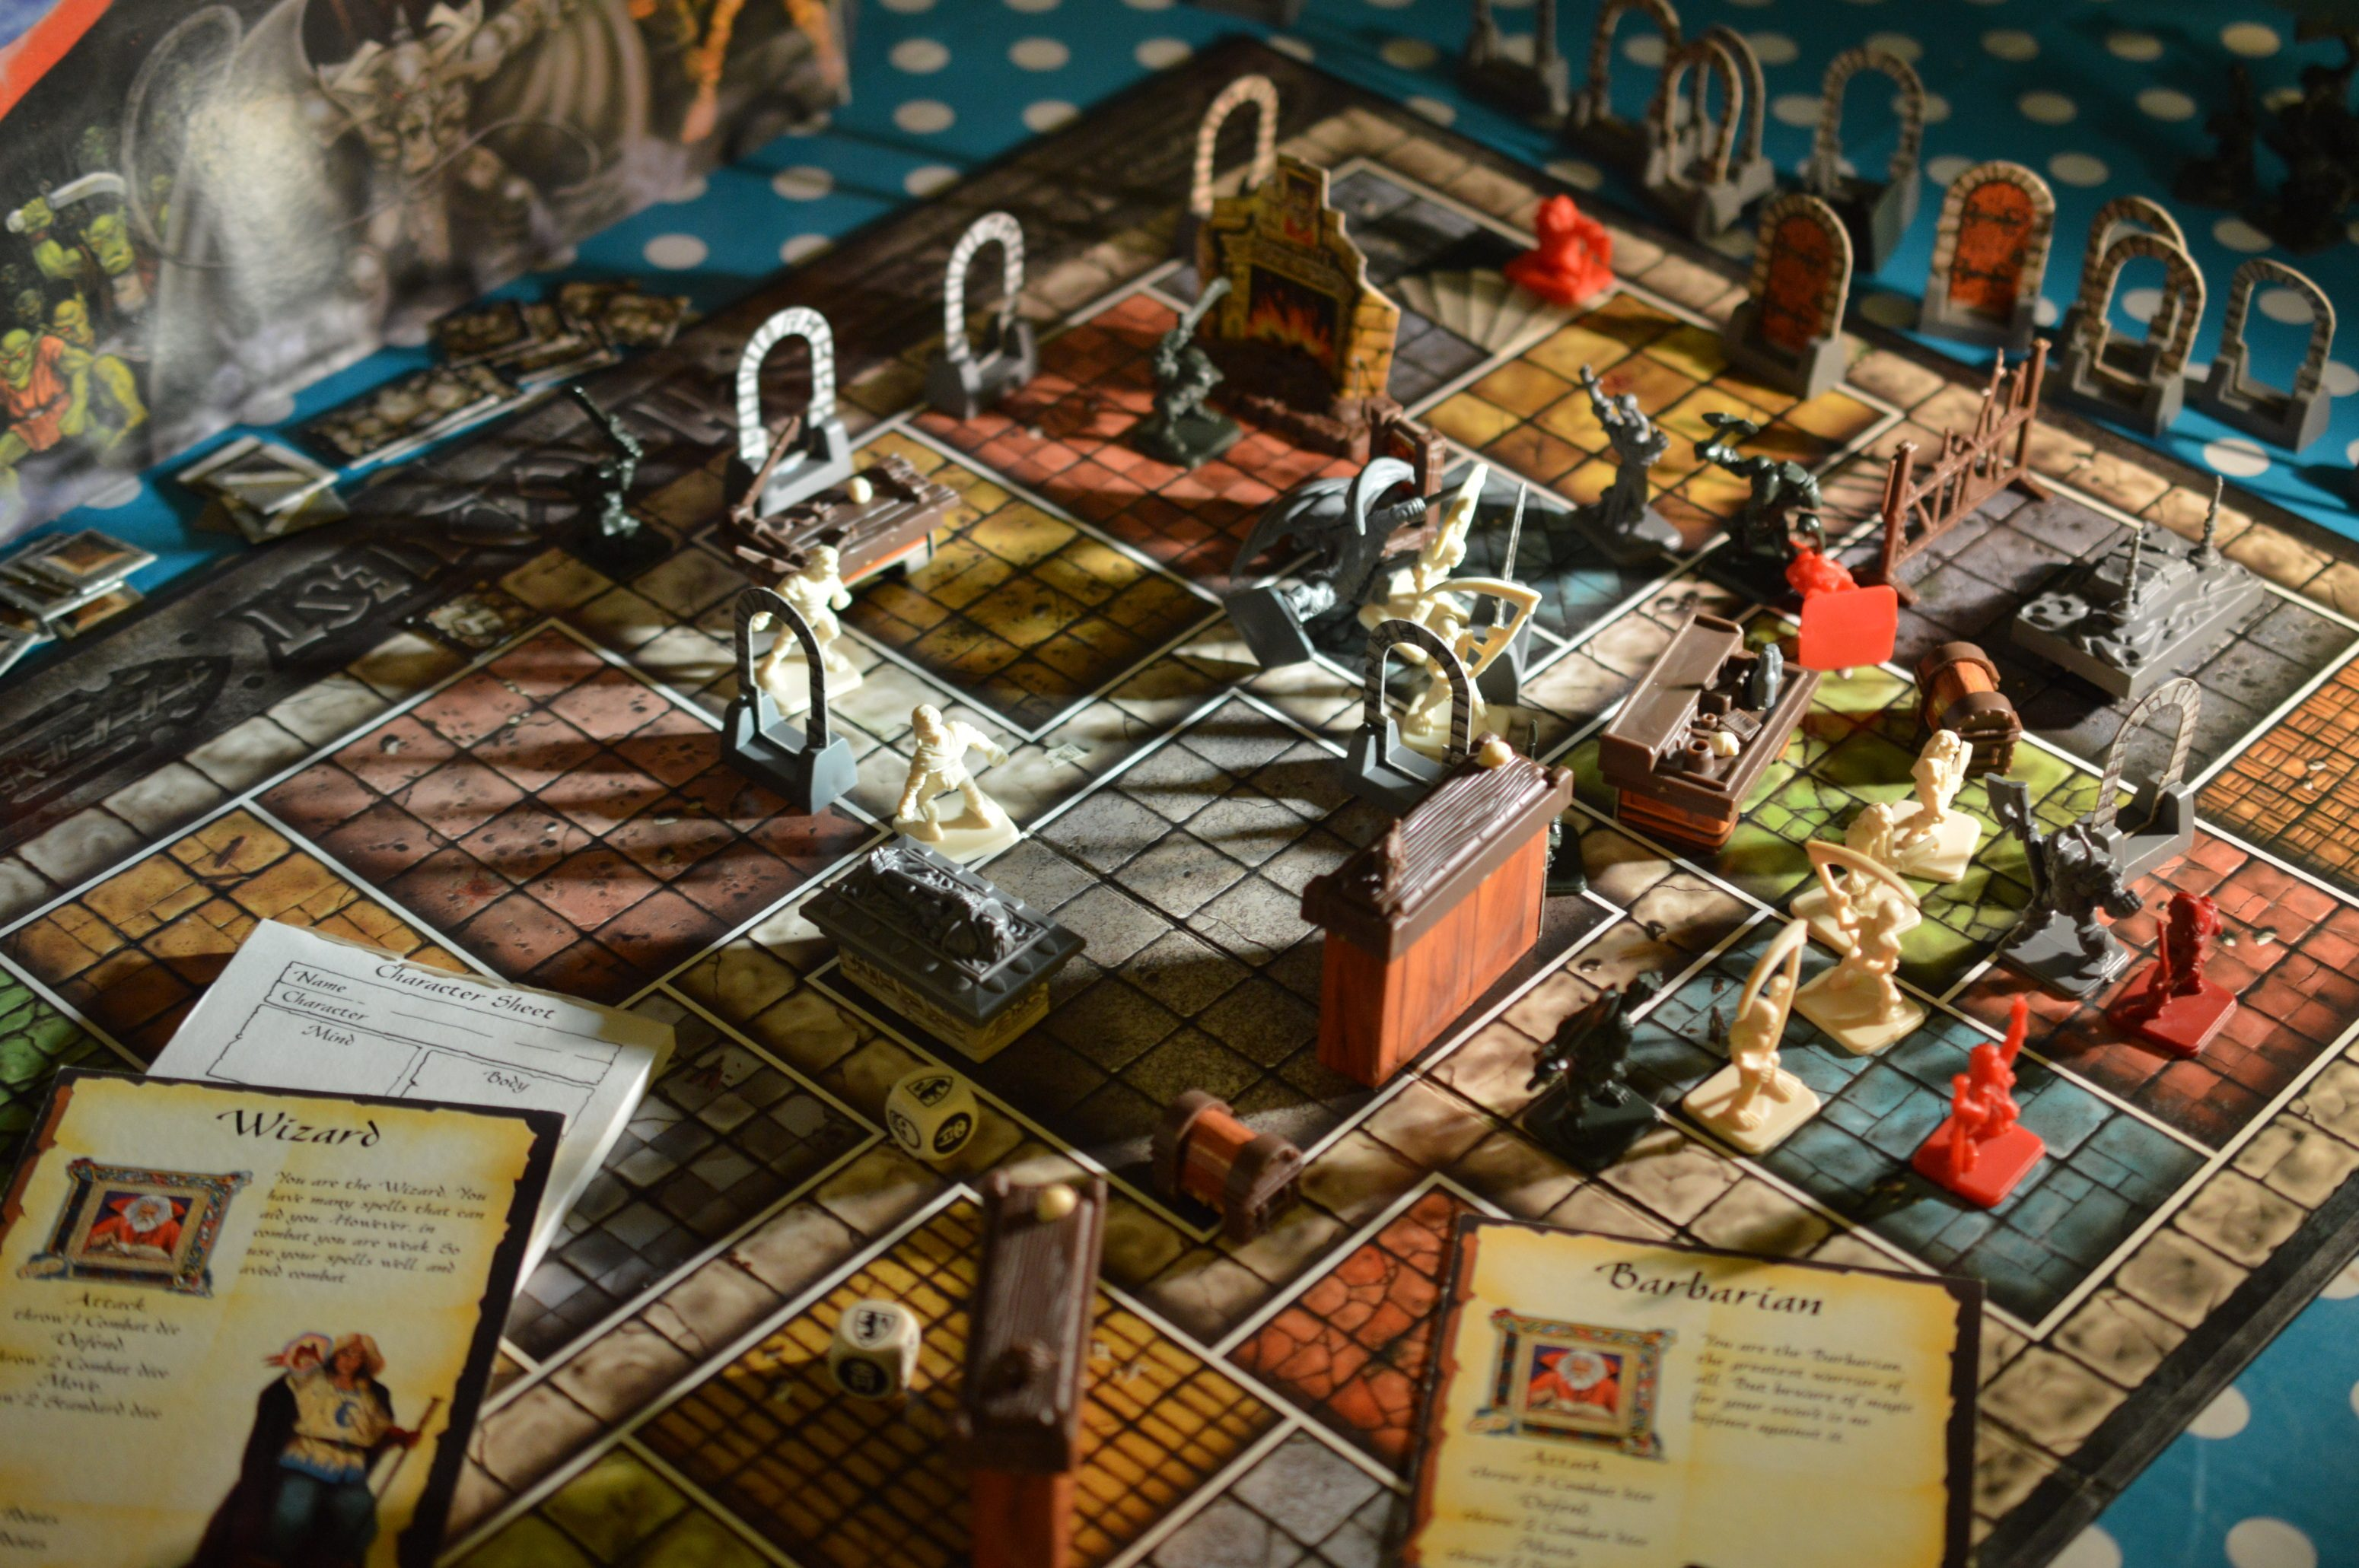 Room Furniture Layout Heroquest Review Nostalgia Nerd